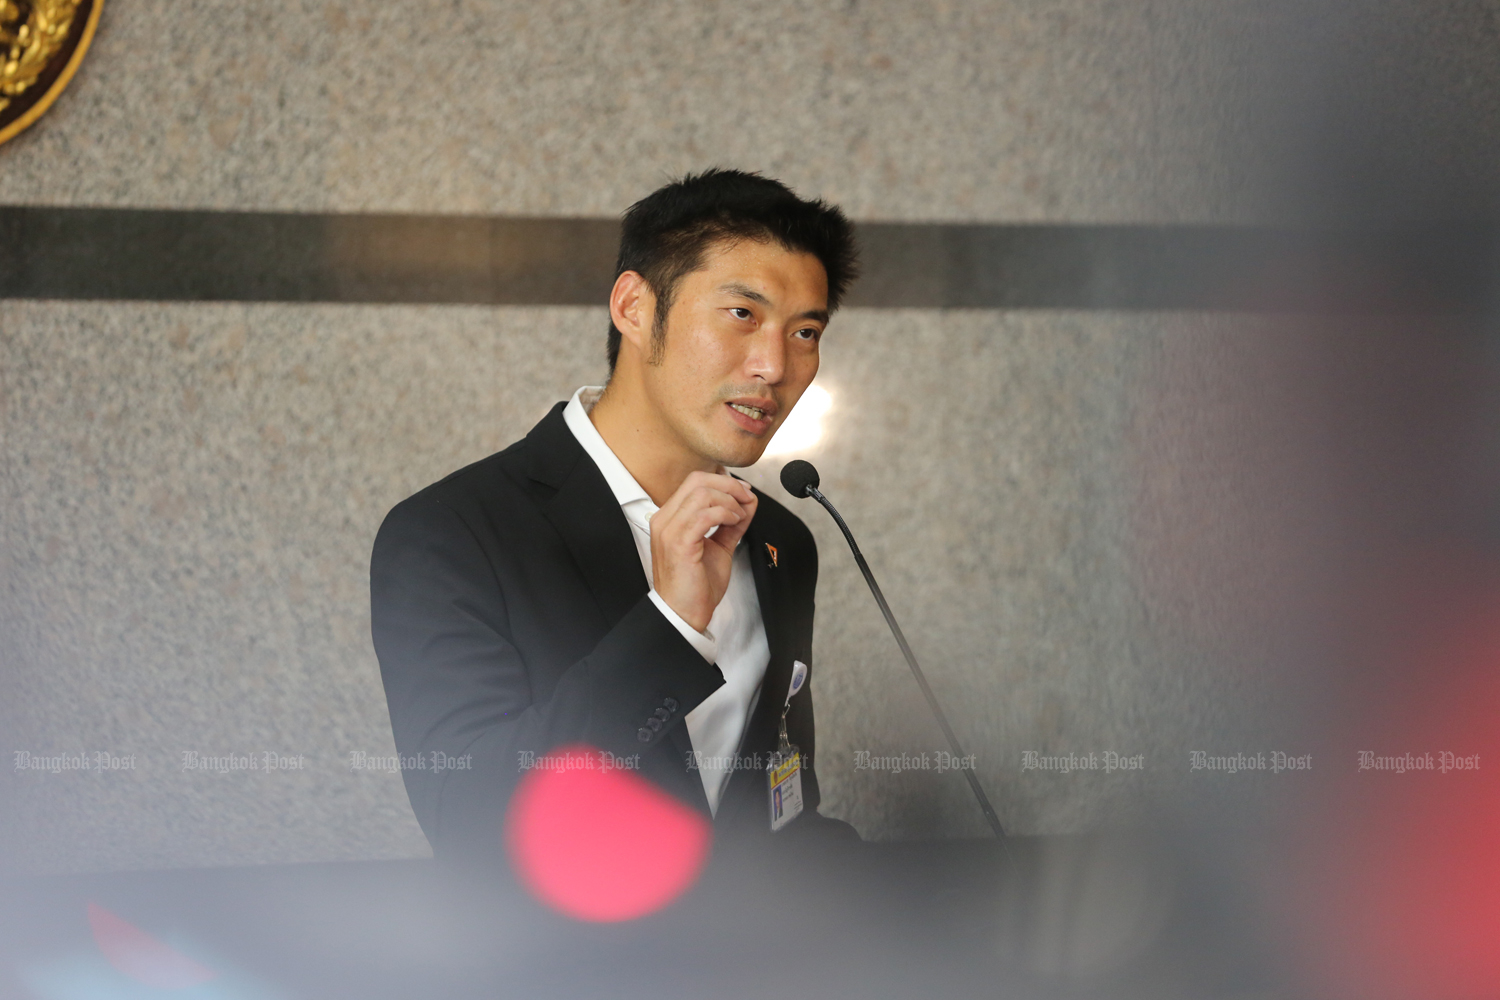 Future Forward Party leader Thanathorn Juangroongruangkit has asked the Constitutional Court to extend the deadline to submit evidence to fight a media share-holding charge by 15 days. (Bangkok Post file photo)